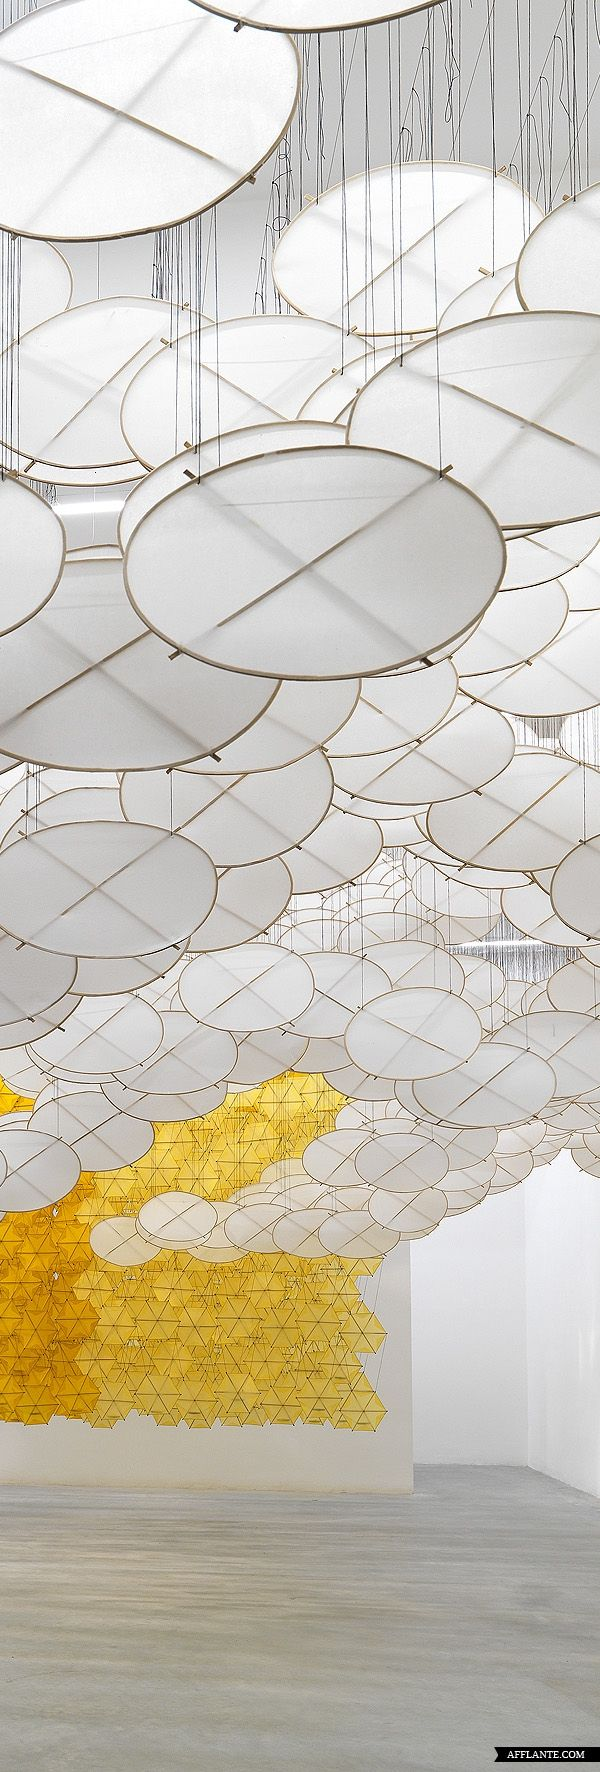 Jacob Hashimoto The Other Sun installation at the Ronchini Gallery 2012